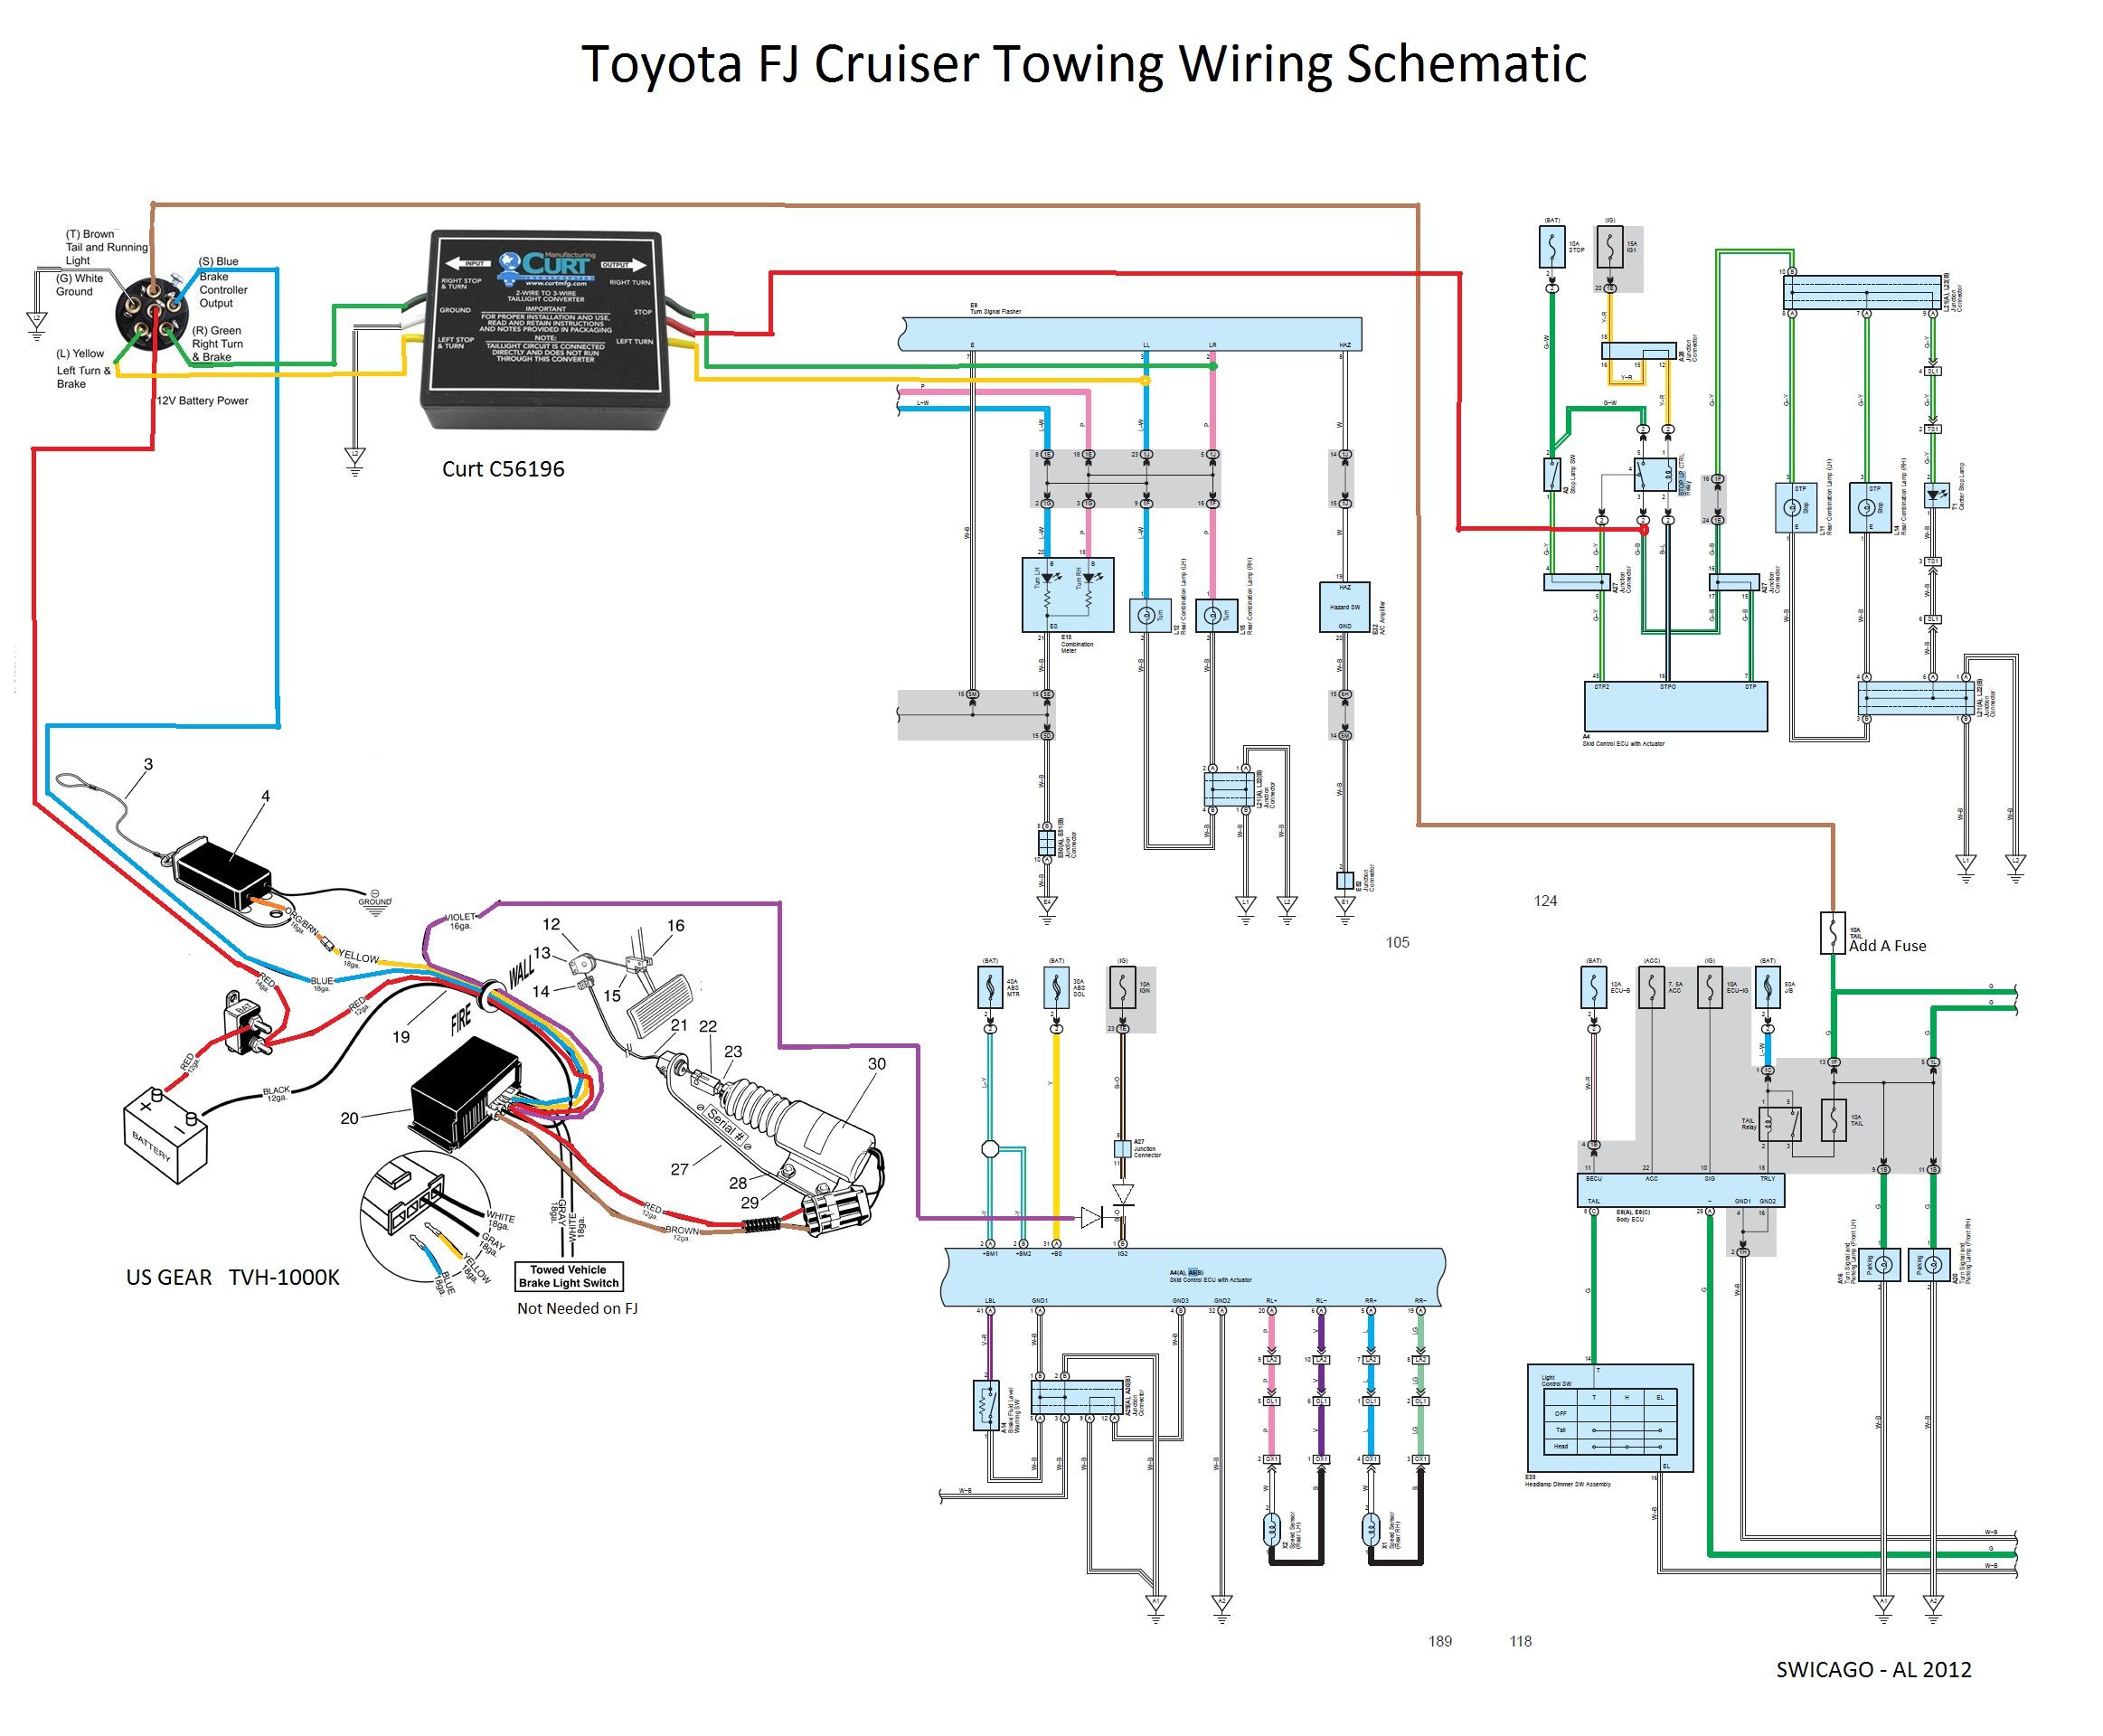 Fj Cruiser Wiring Diagram Another Blog About Toyota Land Diagrams Flat Tow 6mt Yes It Can Be Done Forum Rh Fjcruiserforums Com Stereo 2007 Radio